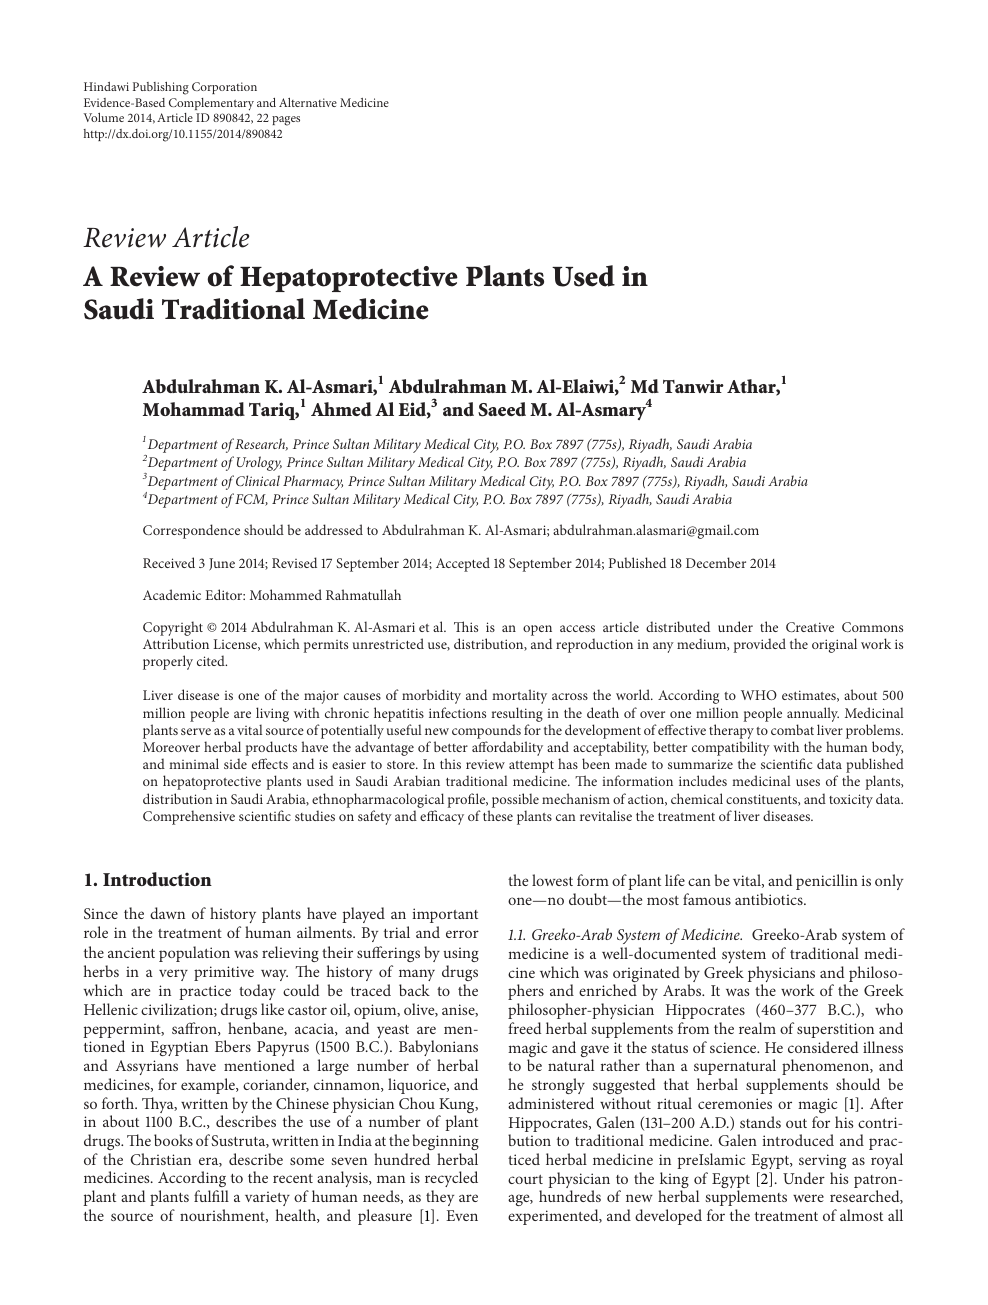 A Review of Hepatoprotective Plants Used in Saudi